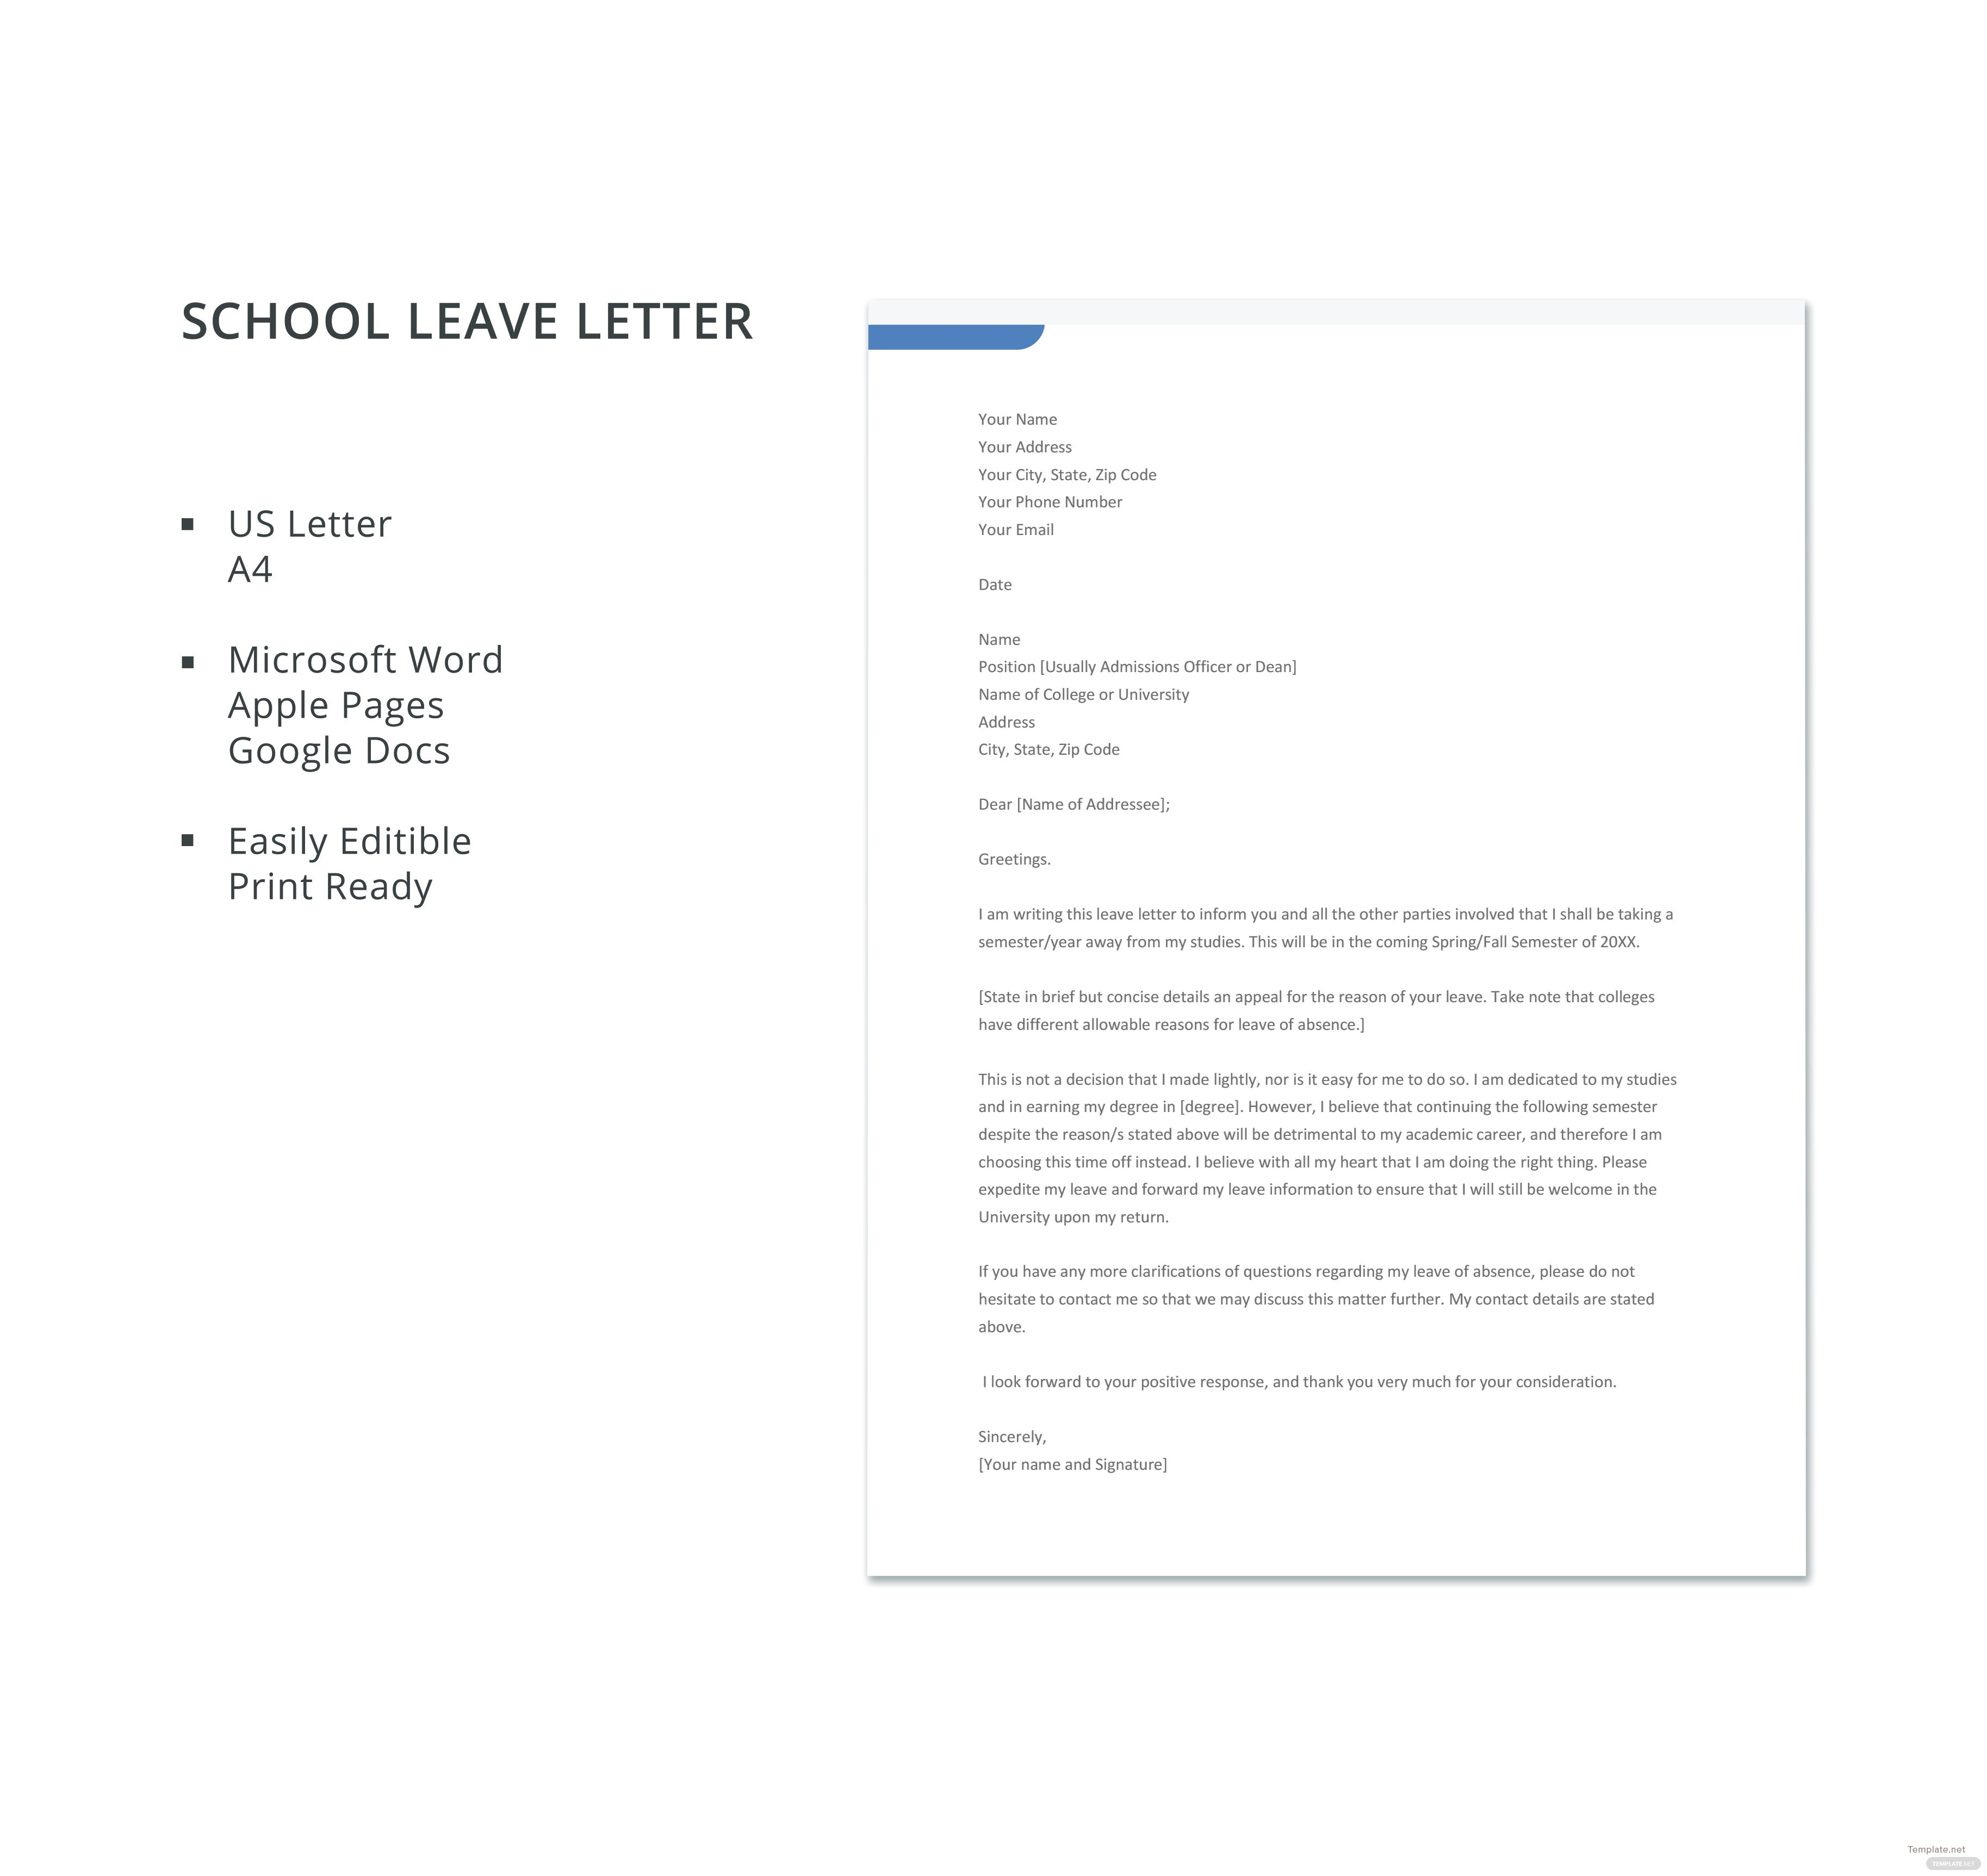 School leave letter template in microsoft word apple pages google click to see full template school leave letter spiritdancerdesigns Image collections